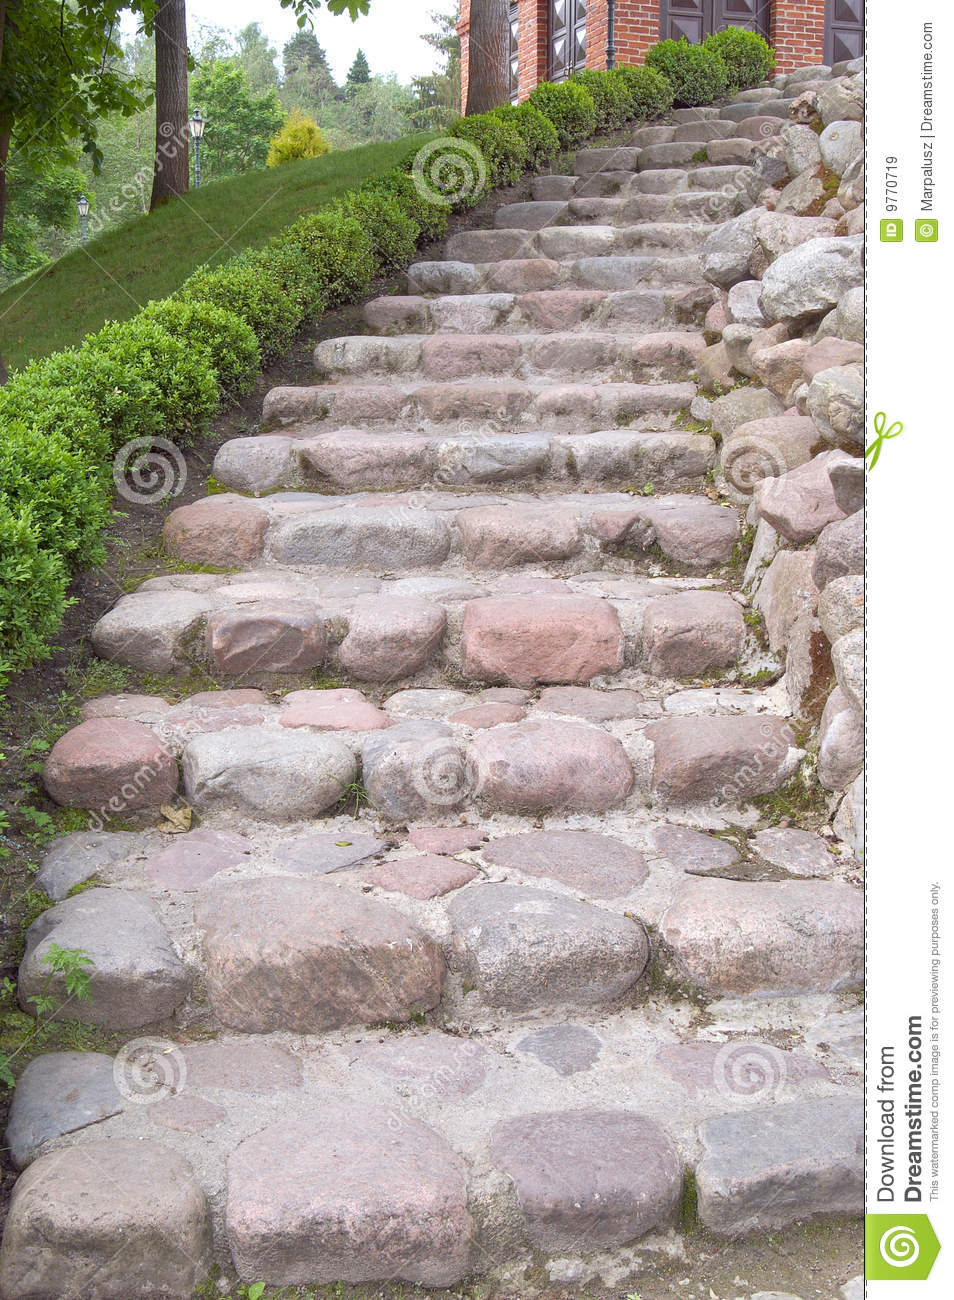 Natural Stone Stairs : Natural stone steps along a flowerbed stock image